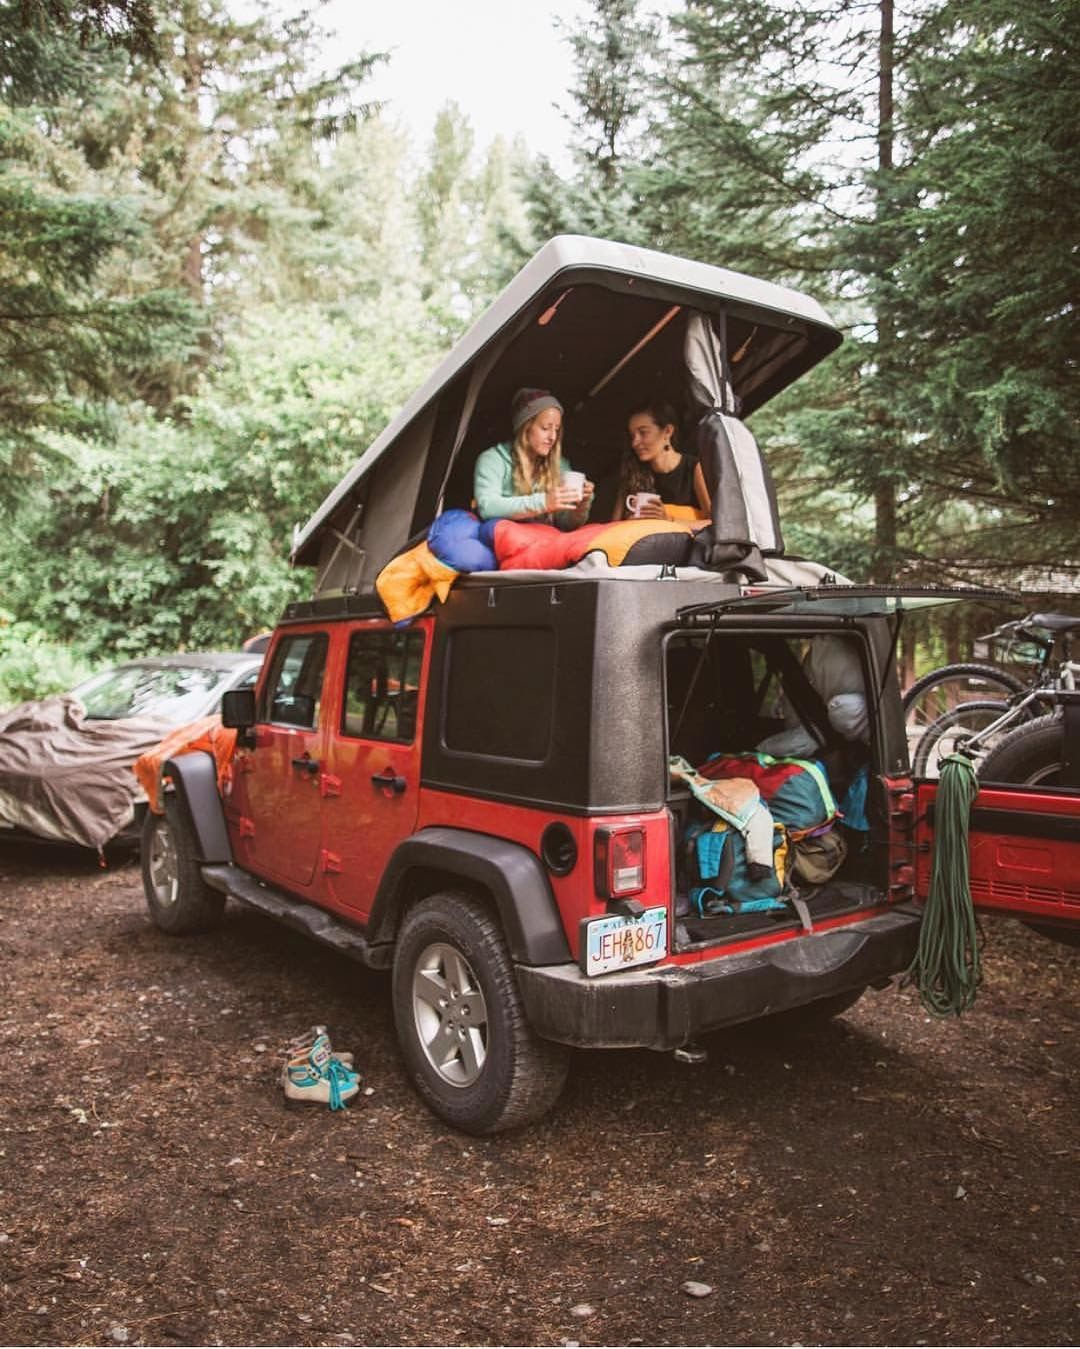 Pin By Doni Tso On Vanlife In 2018 Pinterest Travel Adventure Jeep Wrangler Camper A